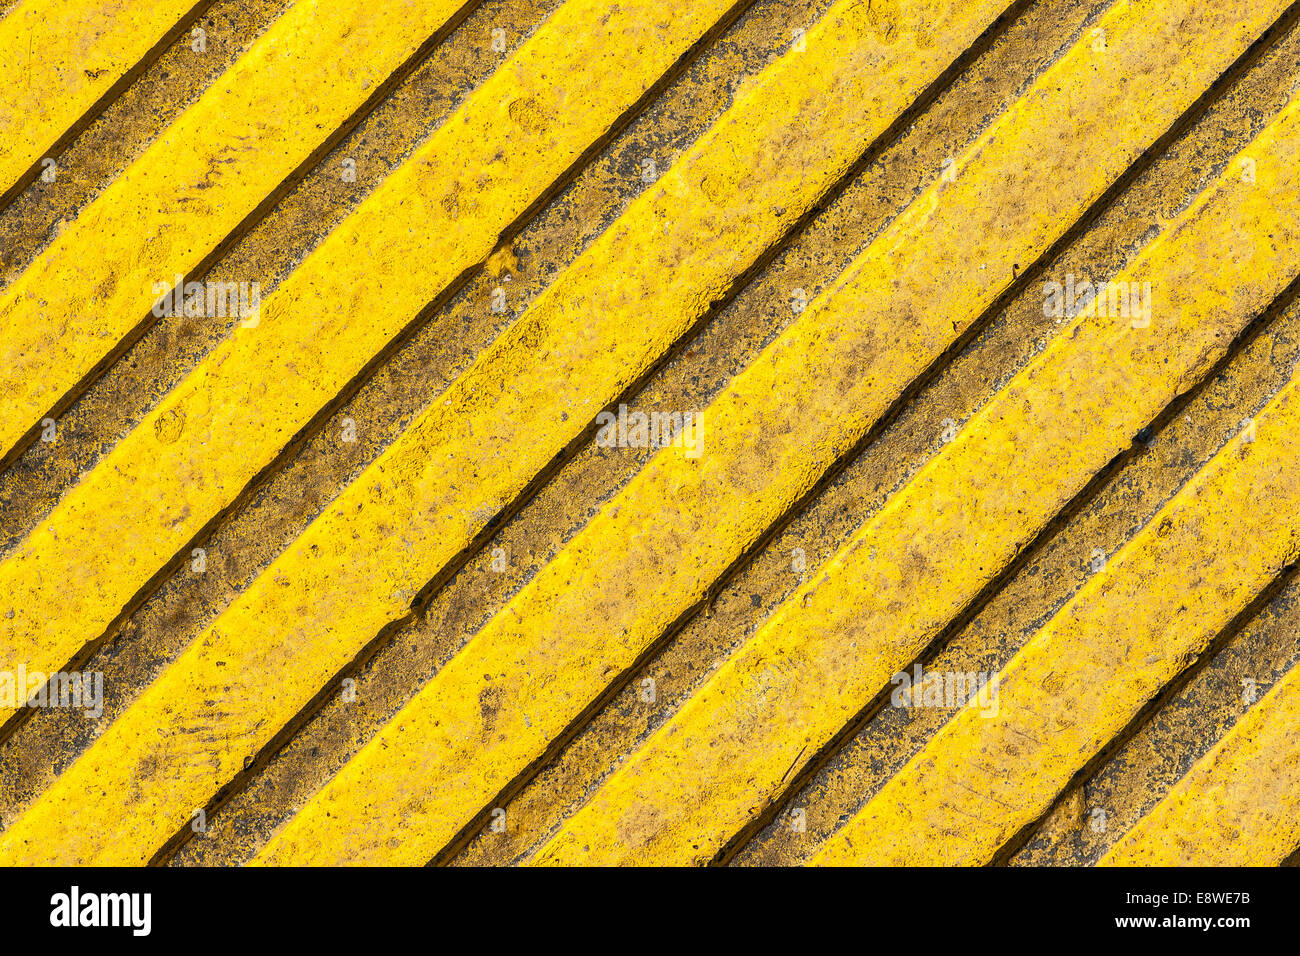 Tactile paving slab texture a paving tile of yellow color with tactile paving slab texture a paving tile of yellow color with raised diagonal lines dailygadgetfo Image collections